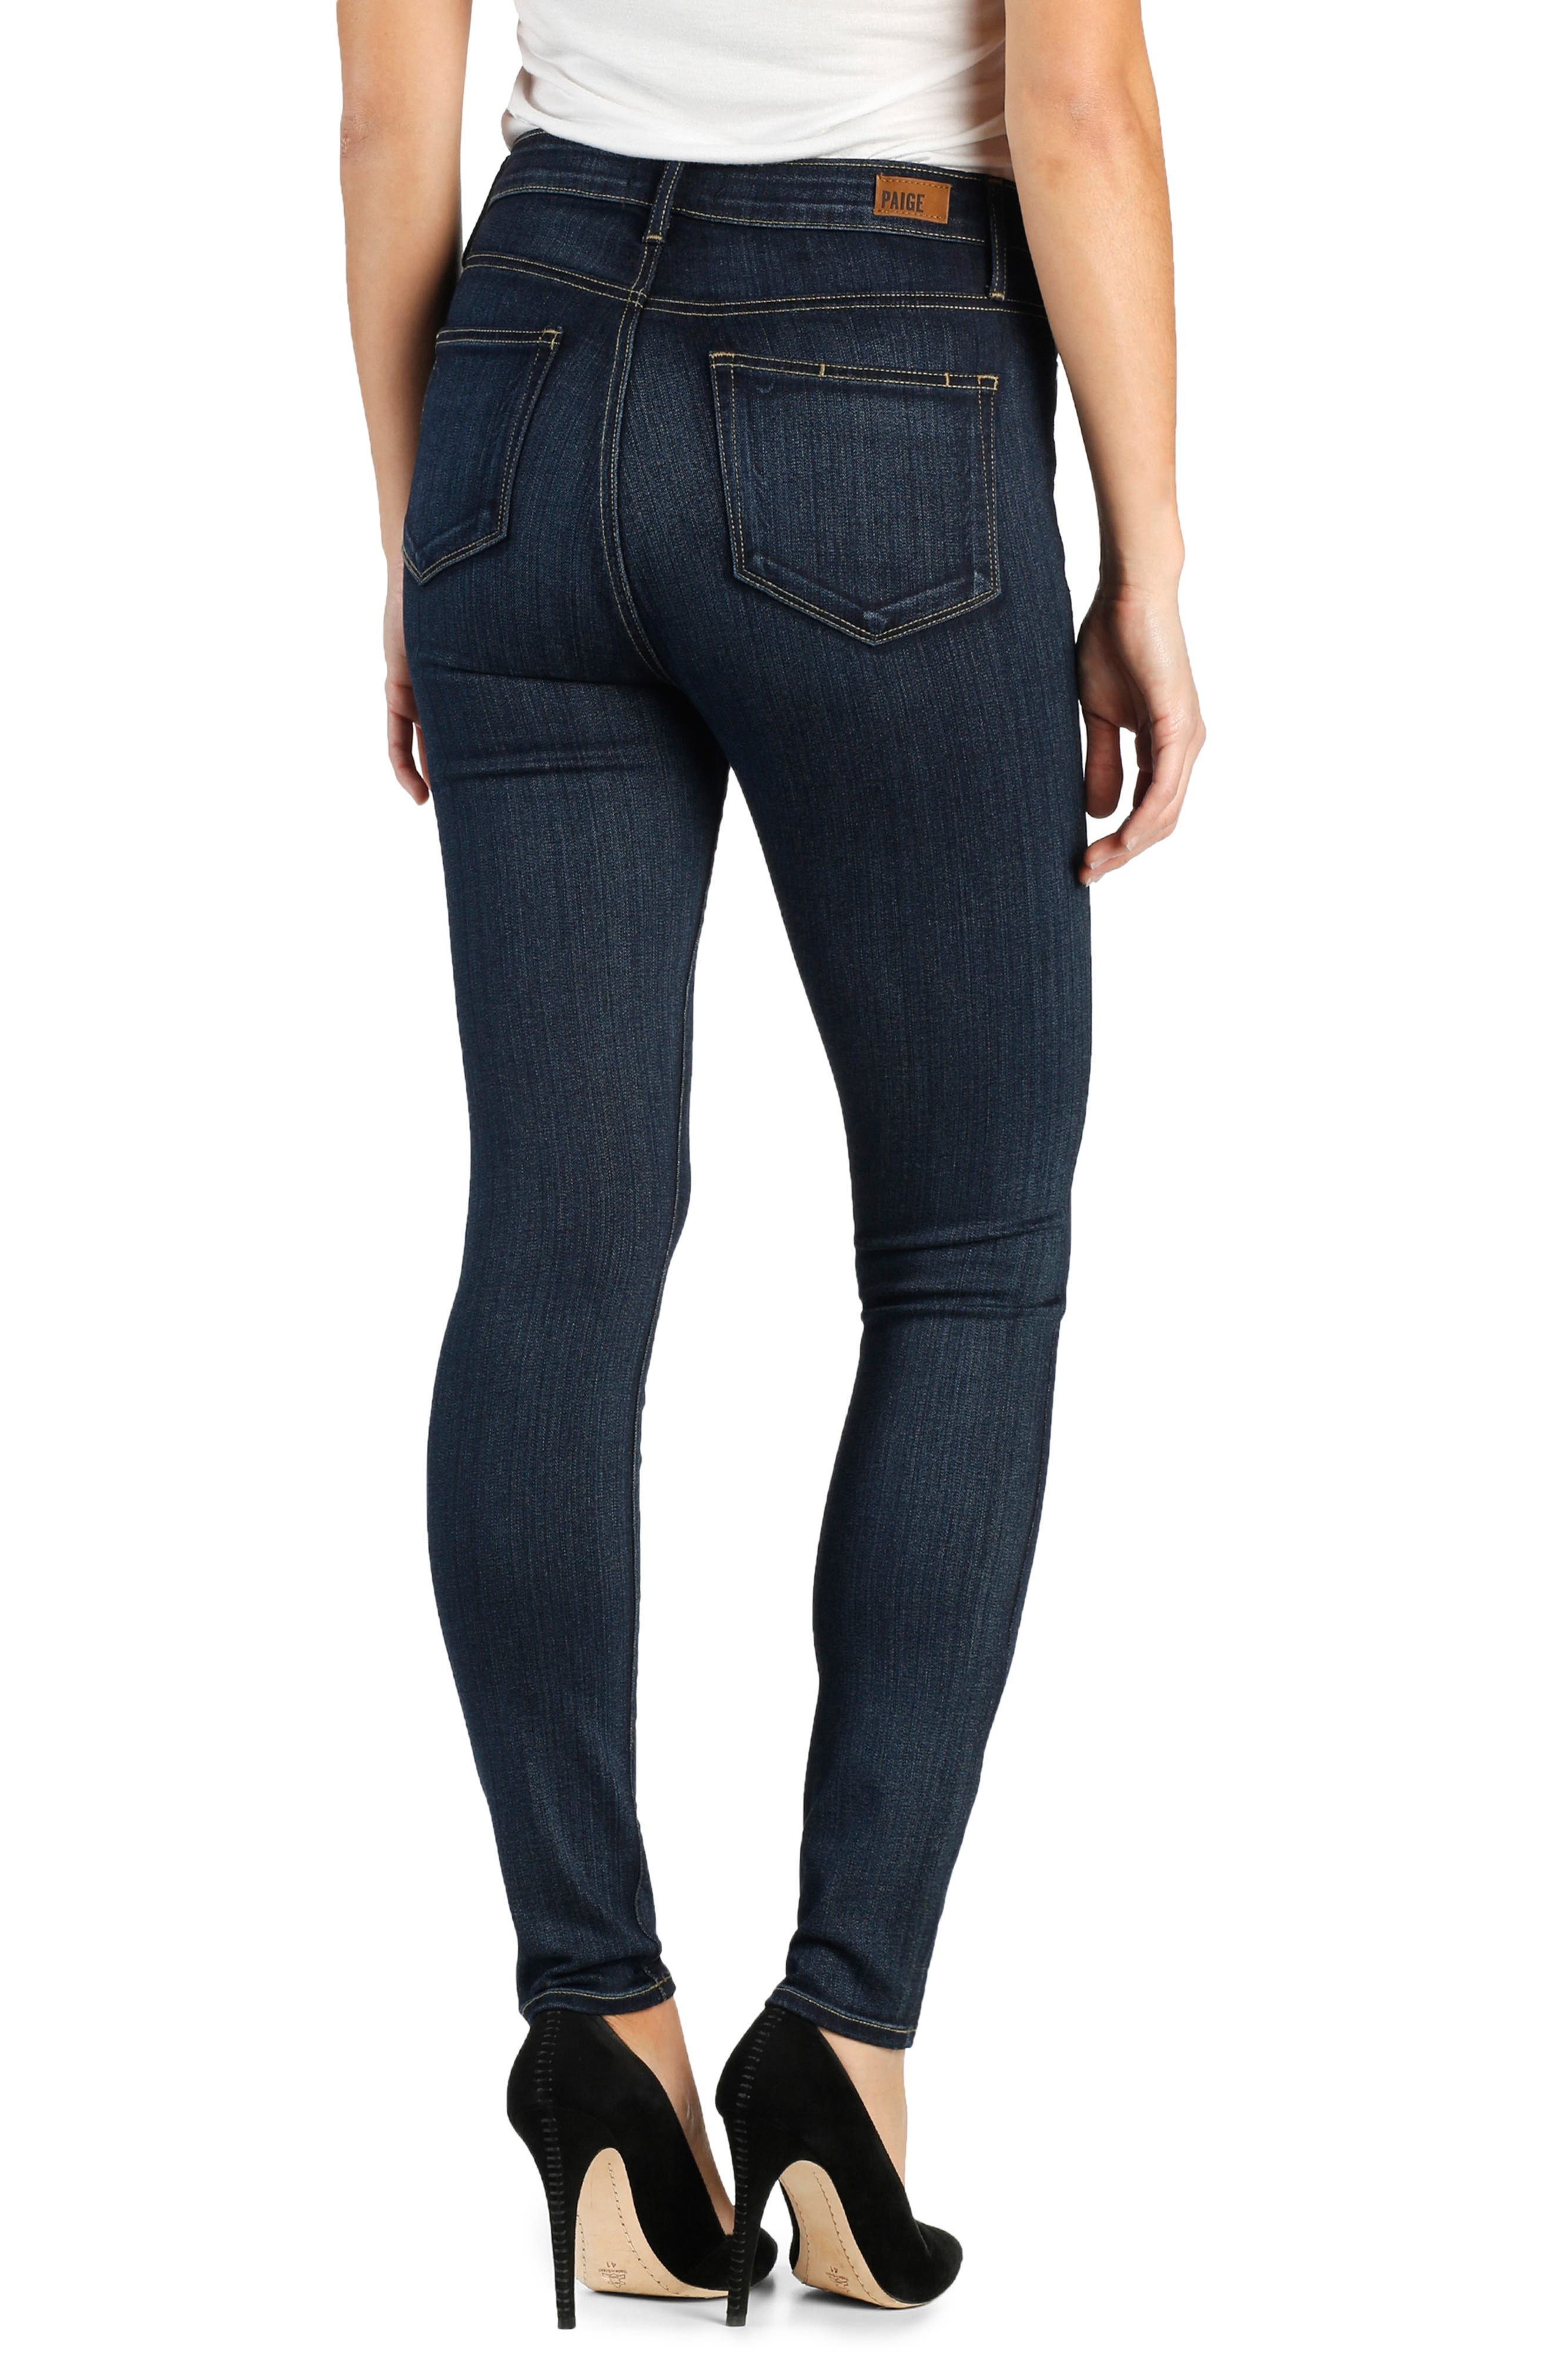 PAIGE,                             Transcend - Margot High Waist Ultra Skinny Jeans,                             Alternate thumbnail 2, color,                             LA RUE NO WHISKERS